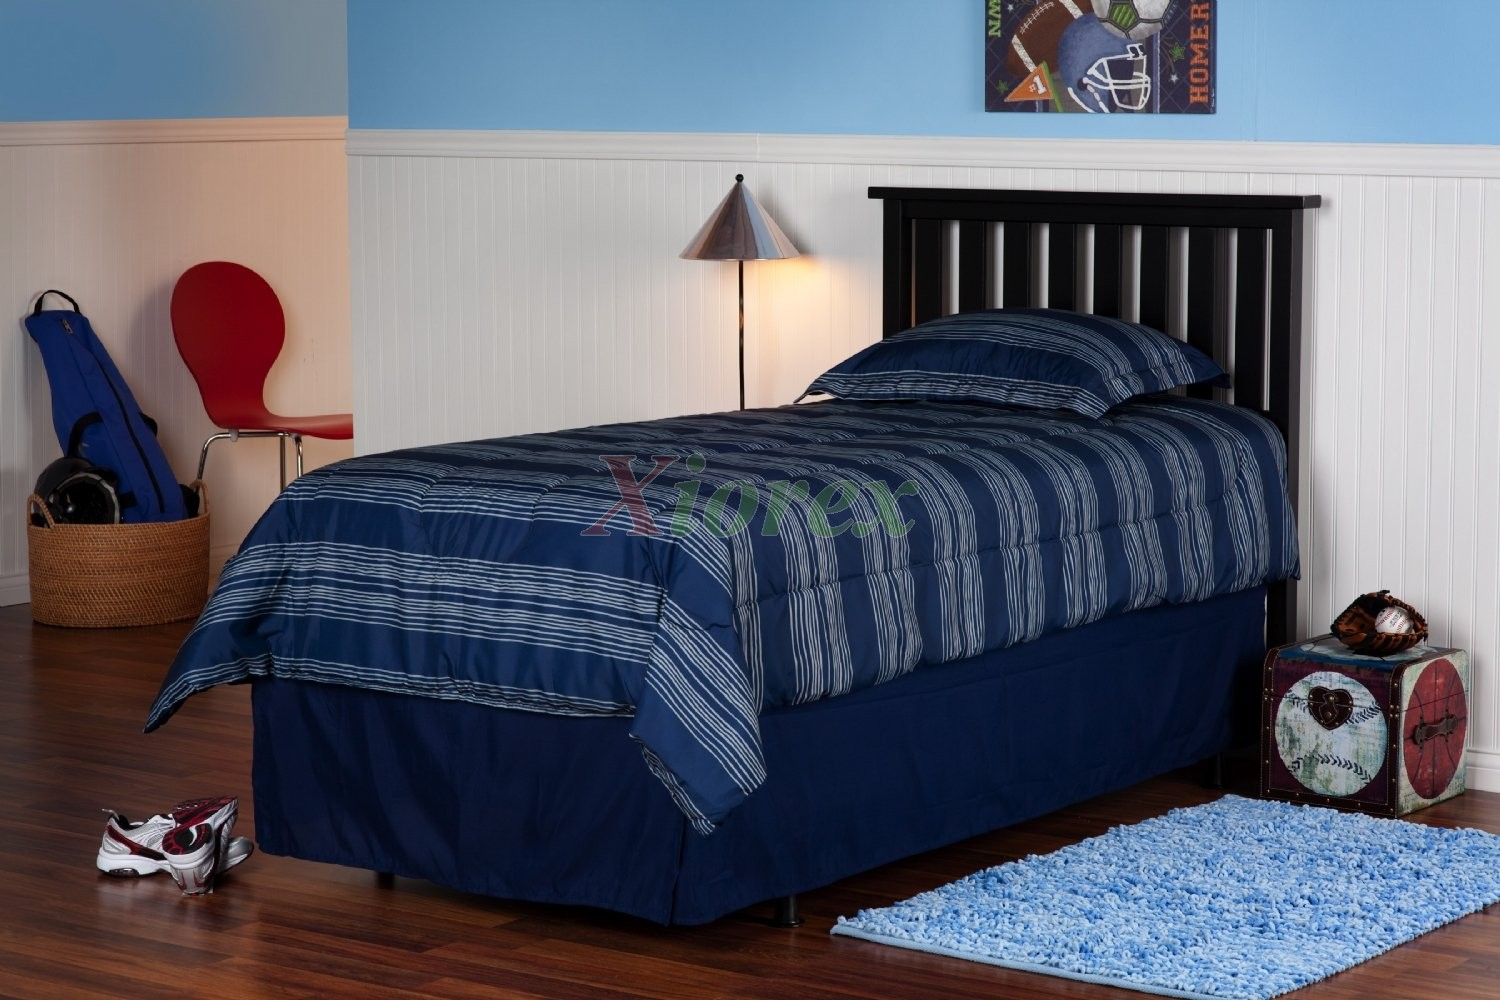 Belmont Headboard Slatted Wood Headboard For Twin Full